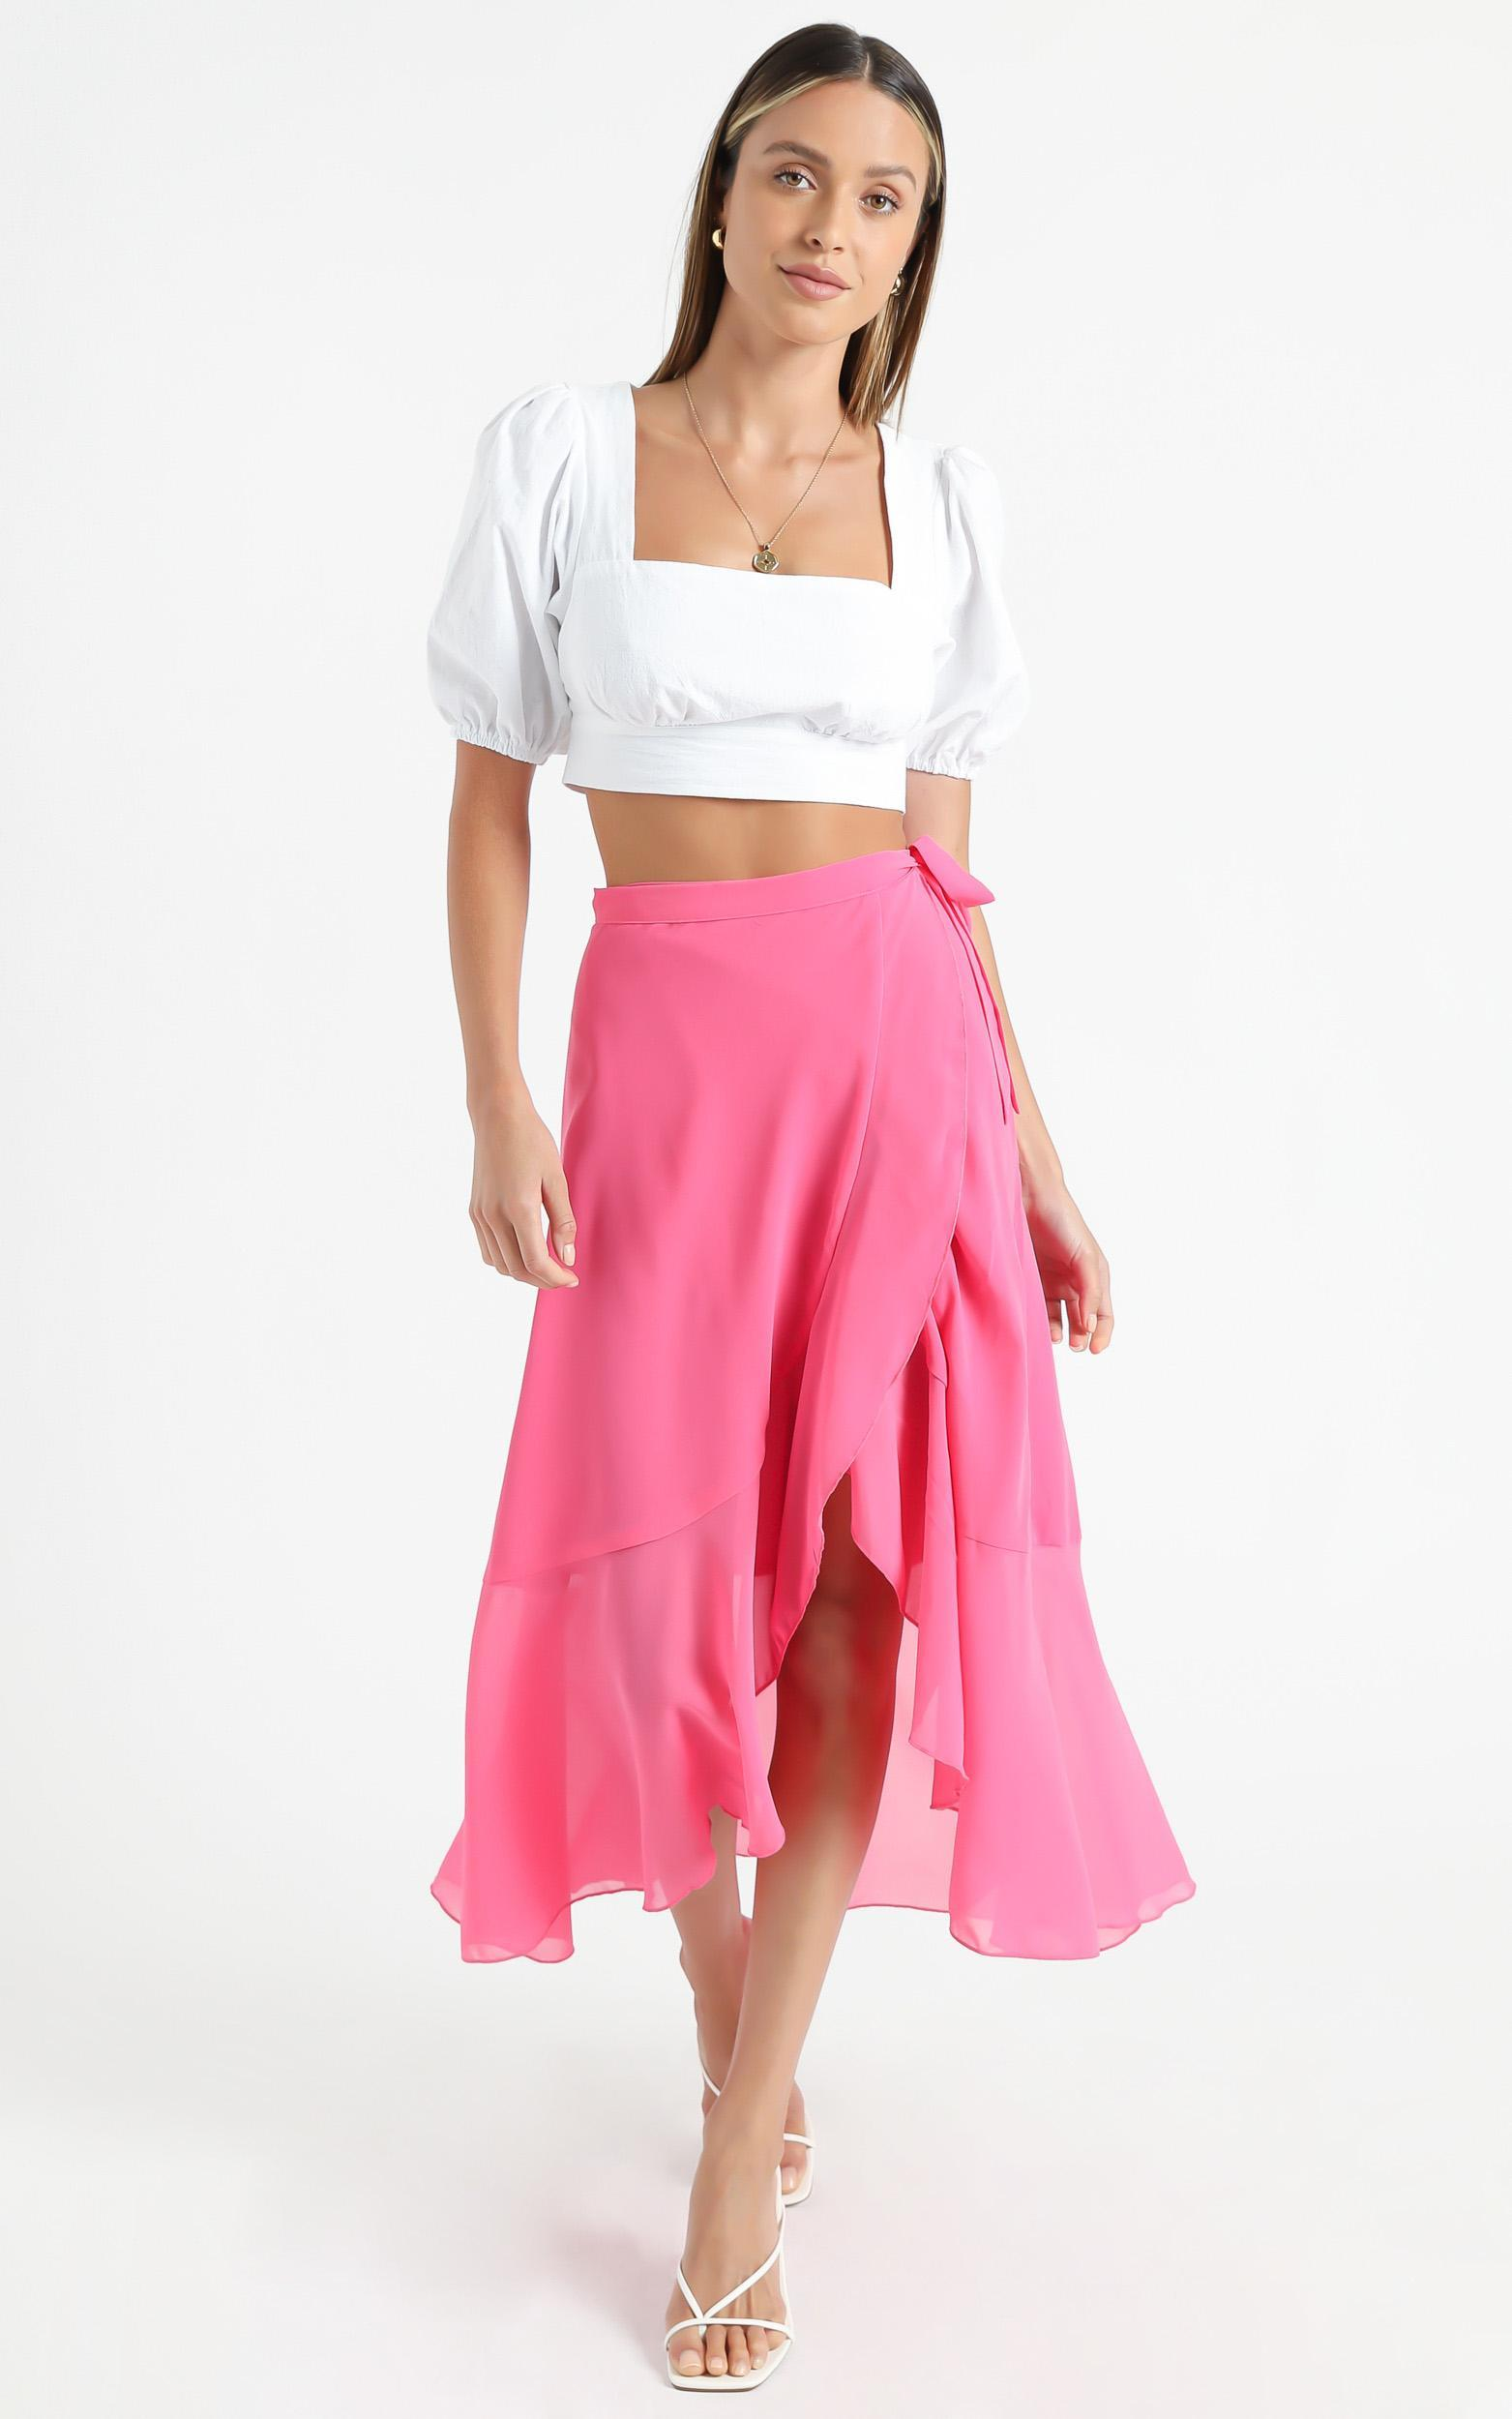 Add To The Mix Skirt in Hot Pink - 6 (XS), Pink, hi-res image number null